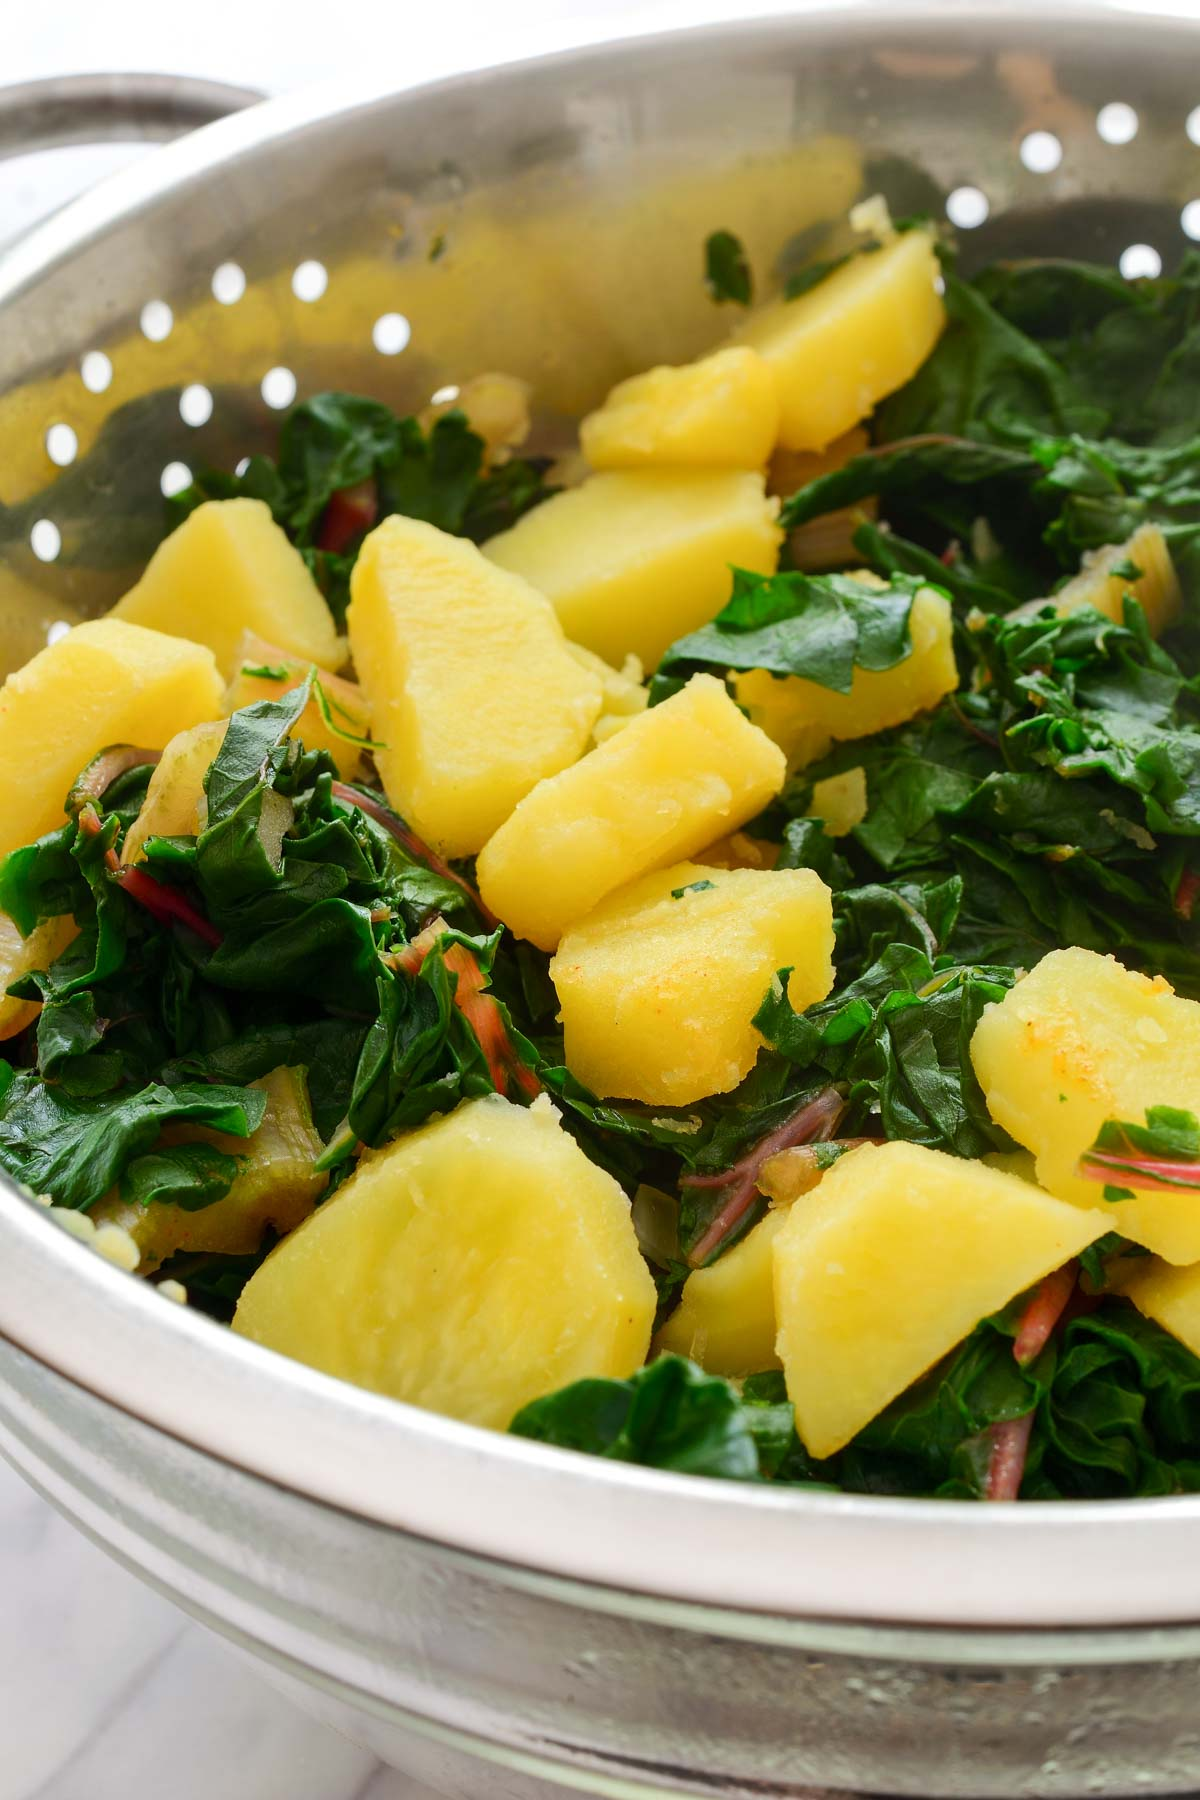 A strainer with the cooked potatoes and chard.